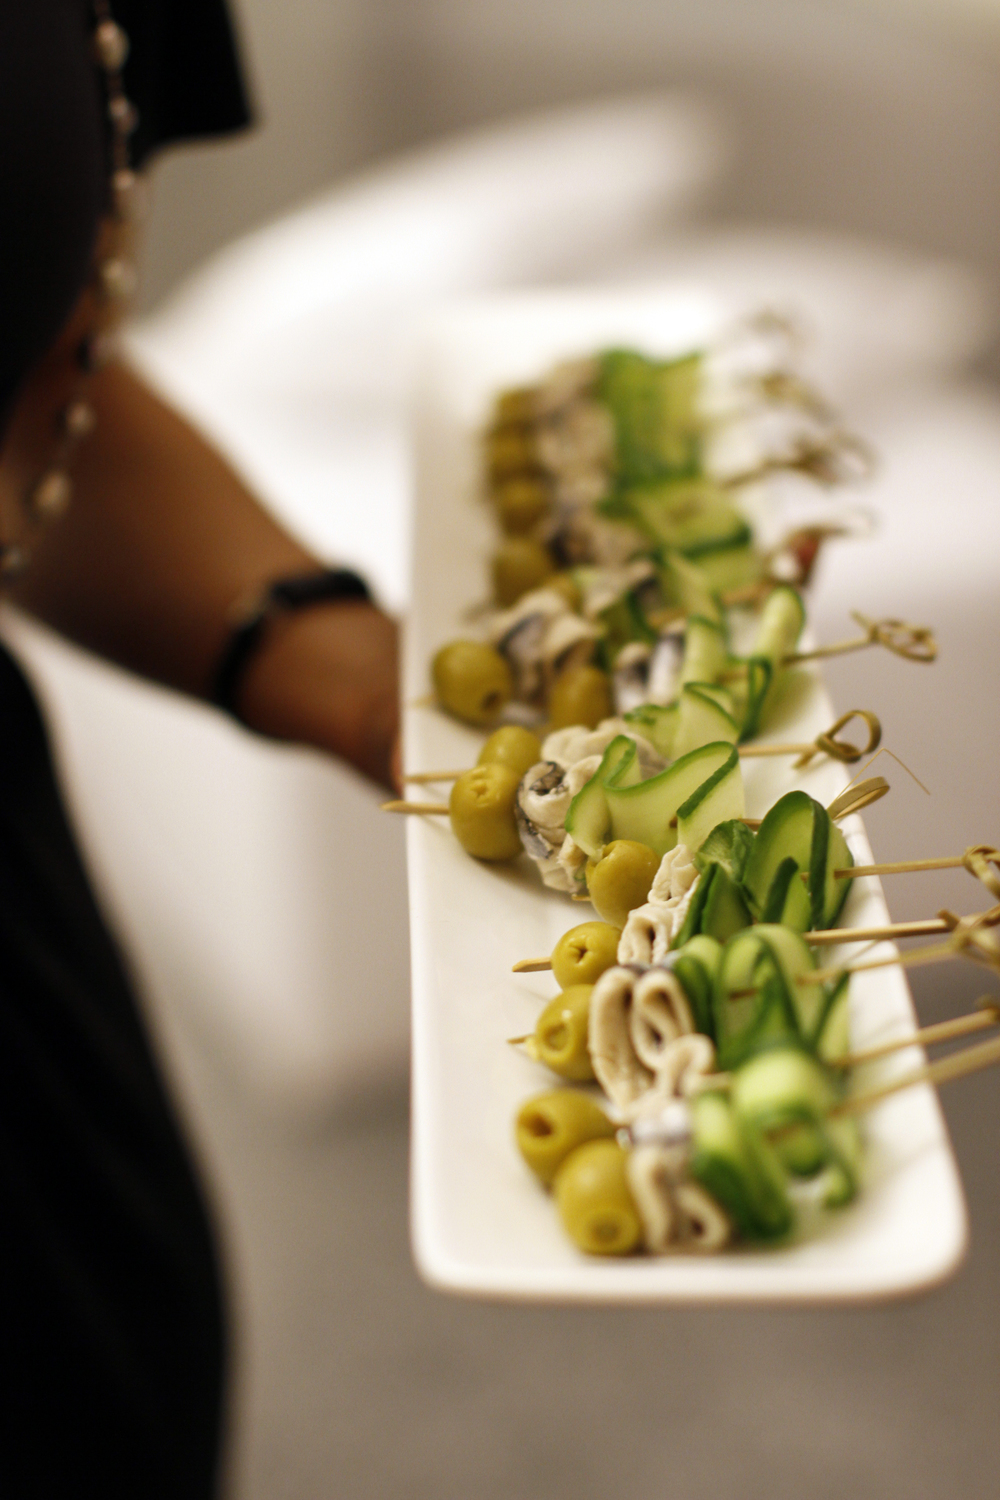 Skewered with cucumber & olive. Photo courtesy: asithappens.com